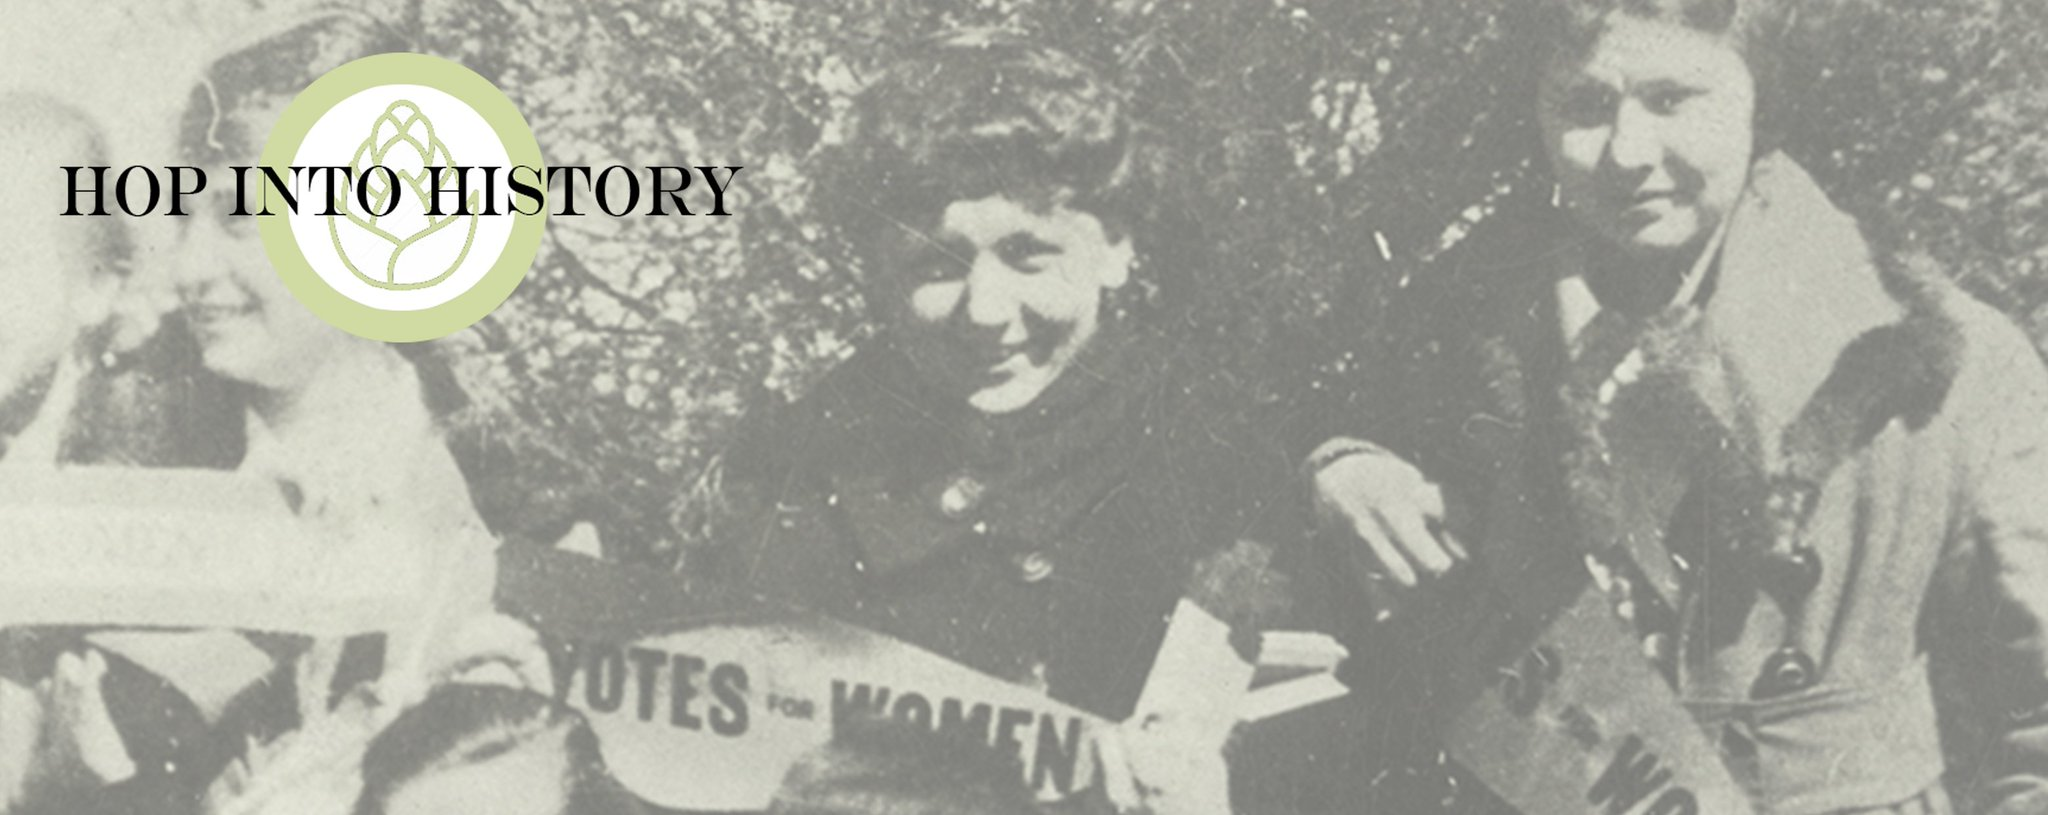 Join us Thursday from 5-7pm at Gibb's for Hop into History!: Nevertheless, She Persisted, an exhibit of Triad women: https://t.co/x7Scl4jh3U https://t.co/TdiL7Rg6n5